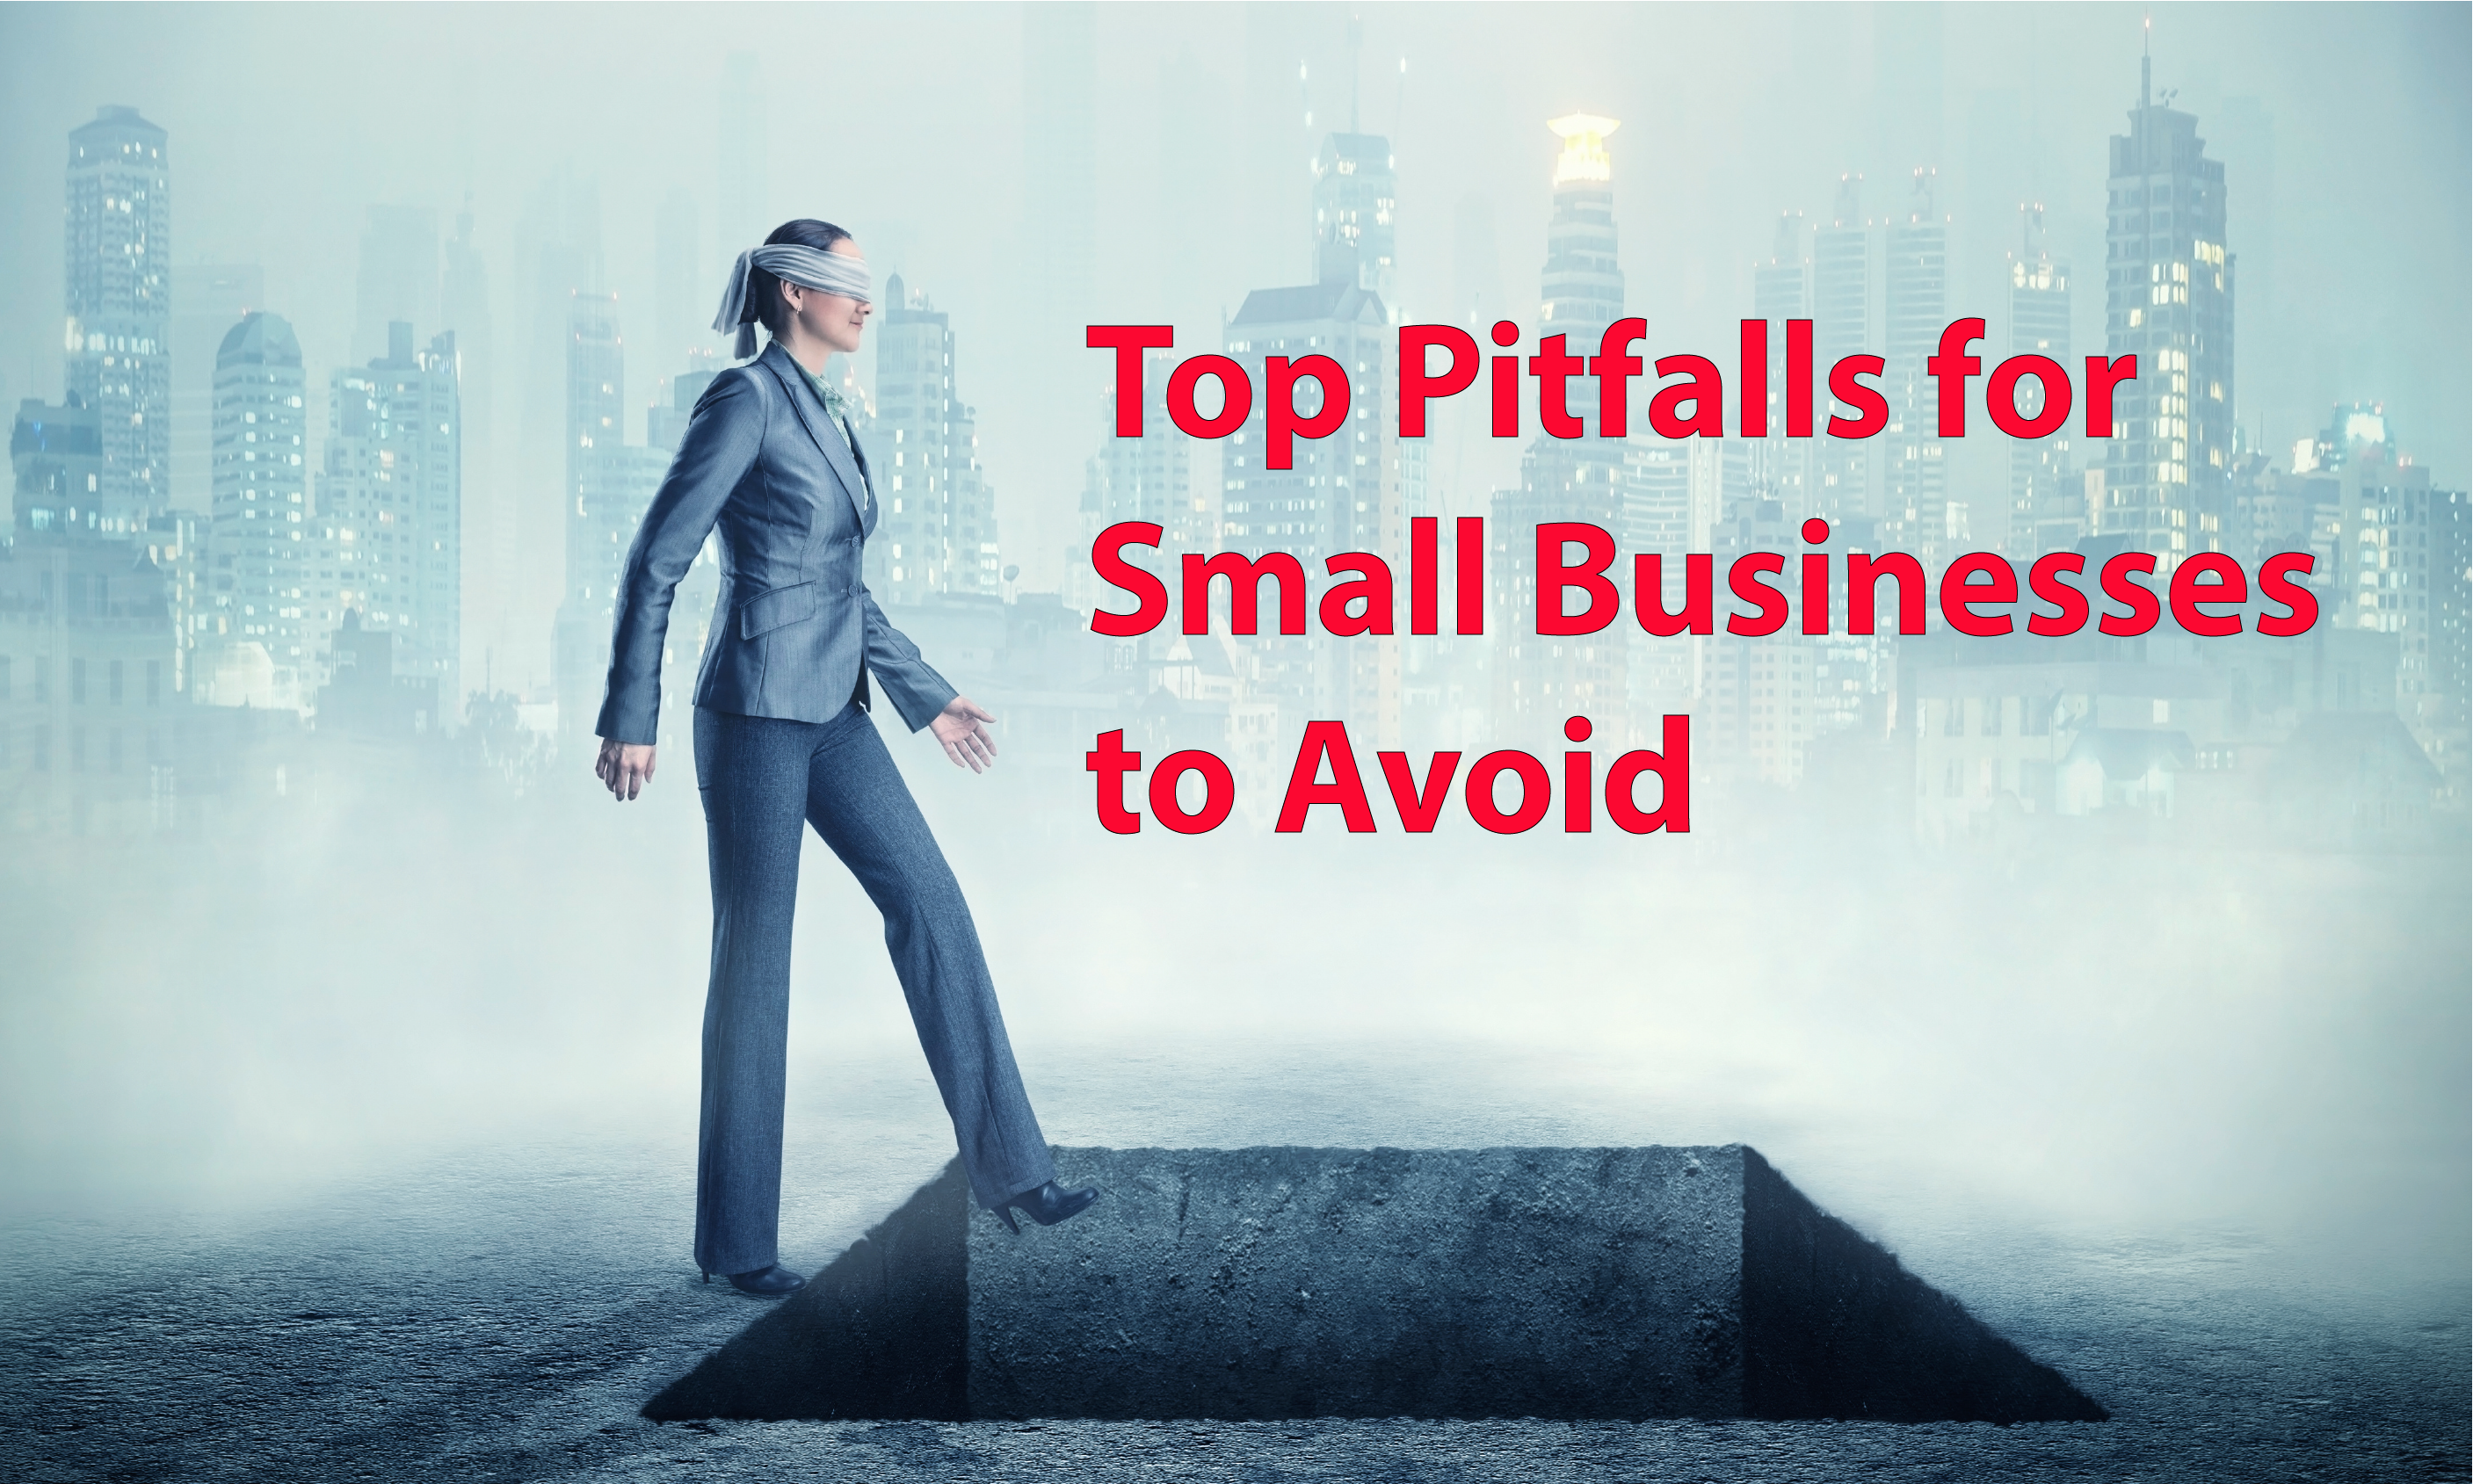 Top Pitfalls For Small Businesses To Avoid